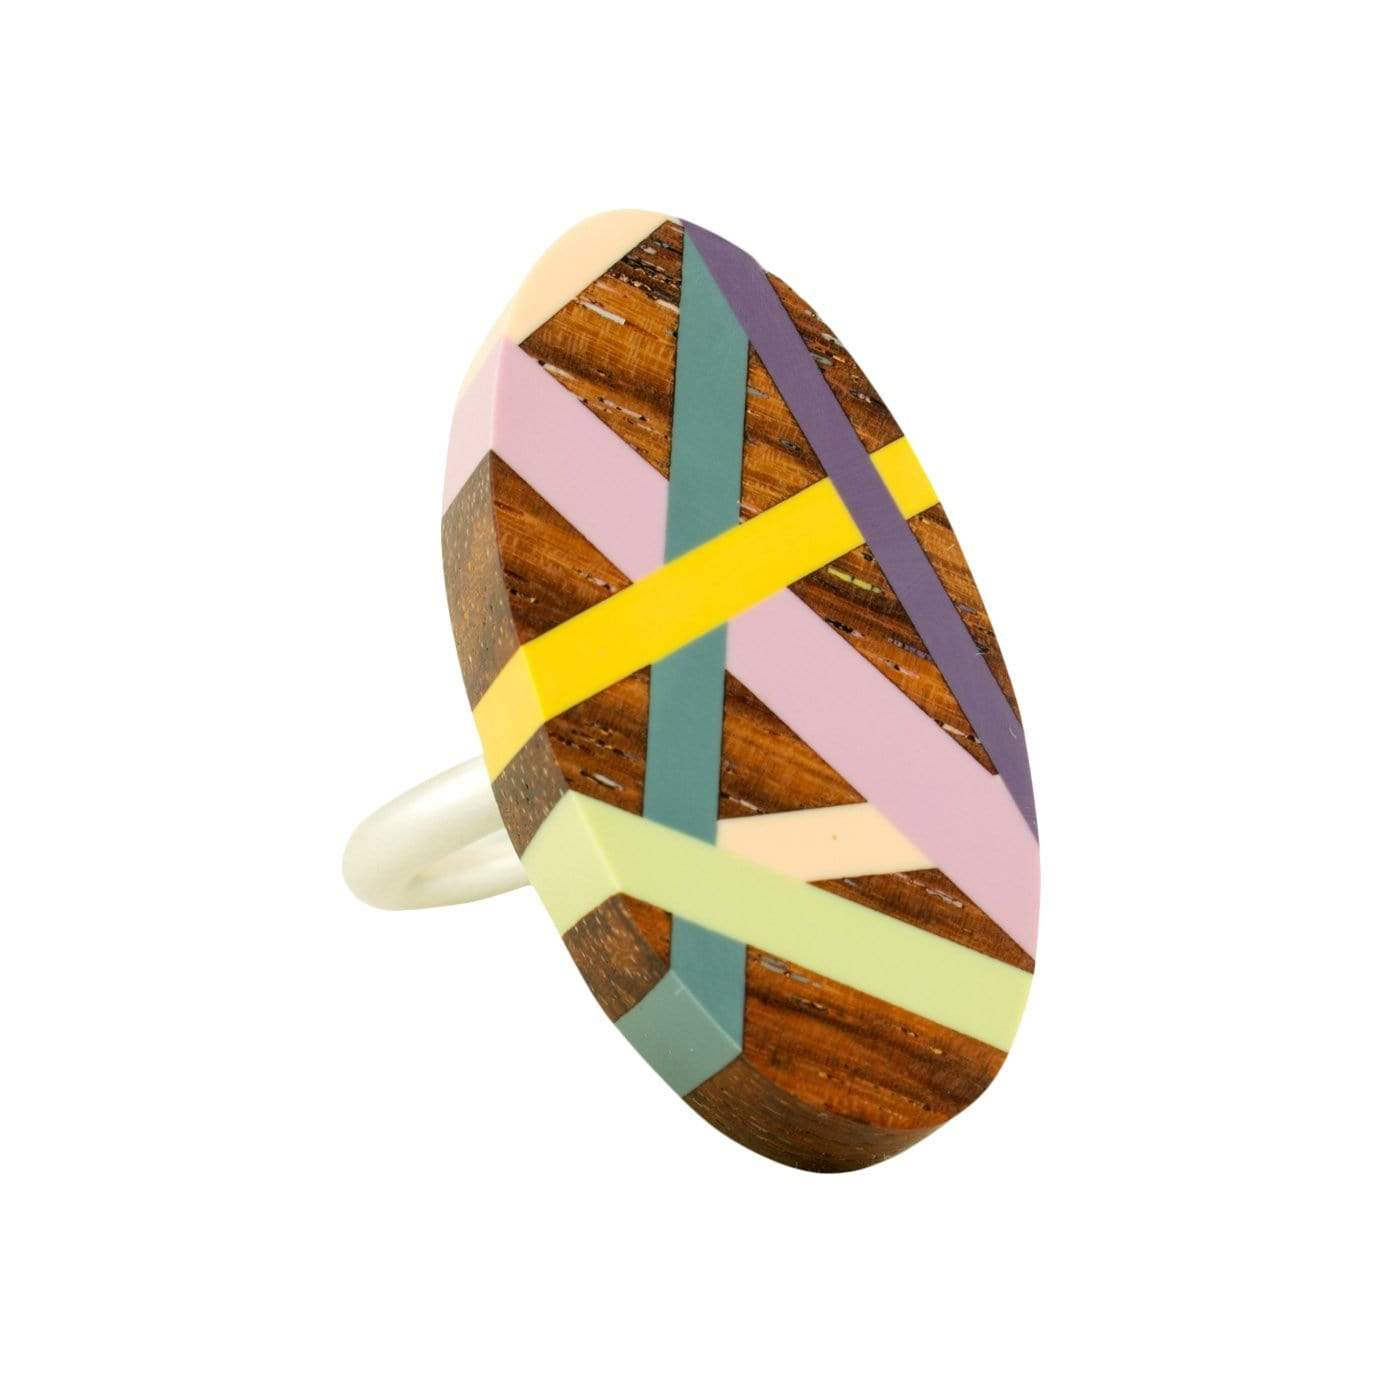 Laura Jaklitsch Jewelry Rings Desert Rose East Indian Rosewood with Inlay Ring